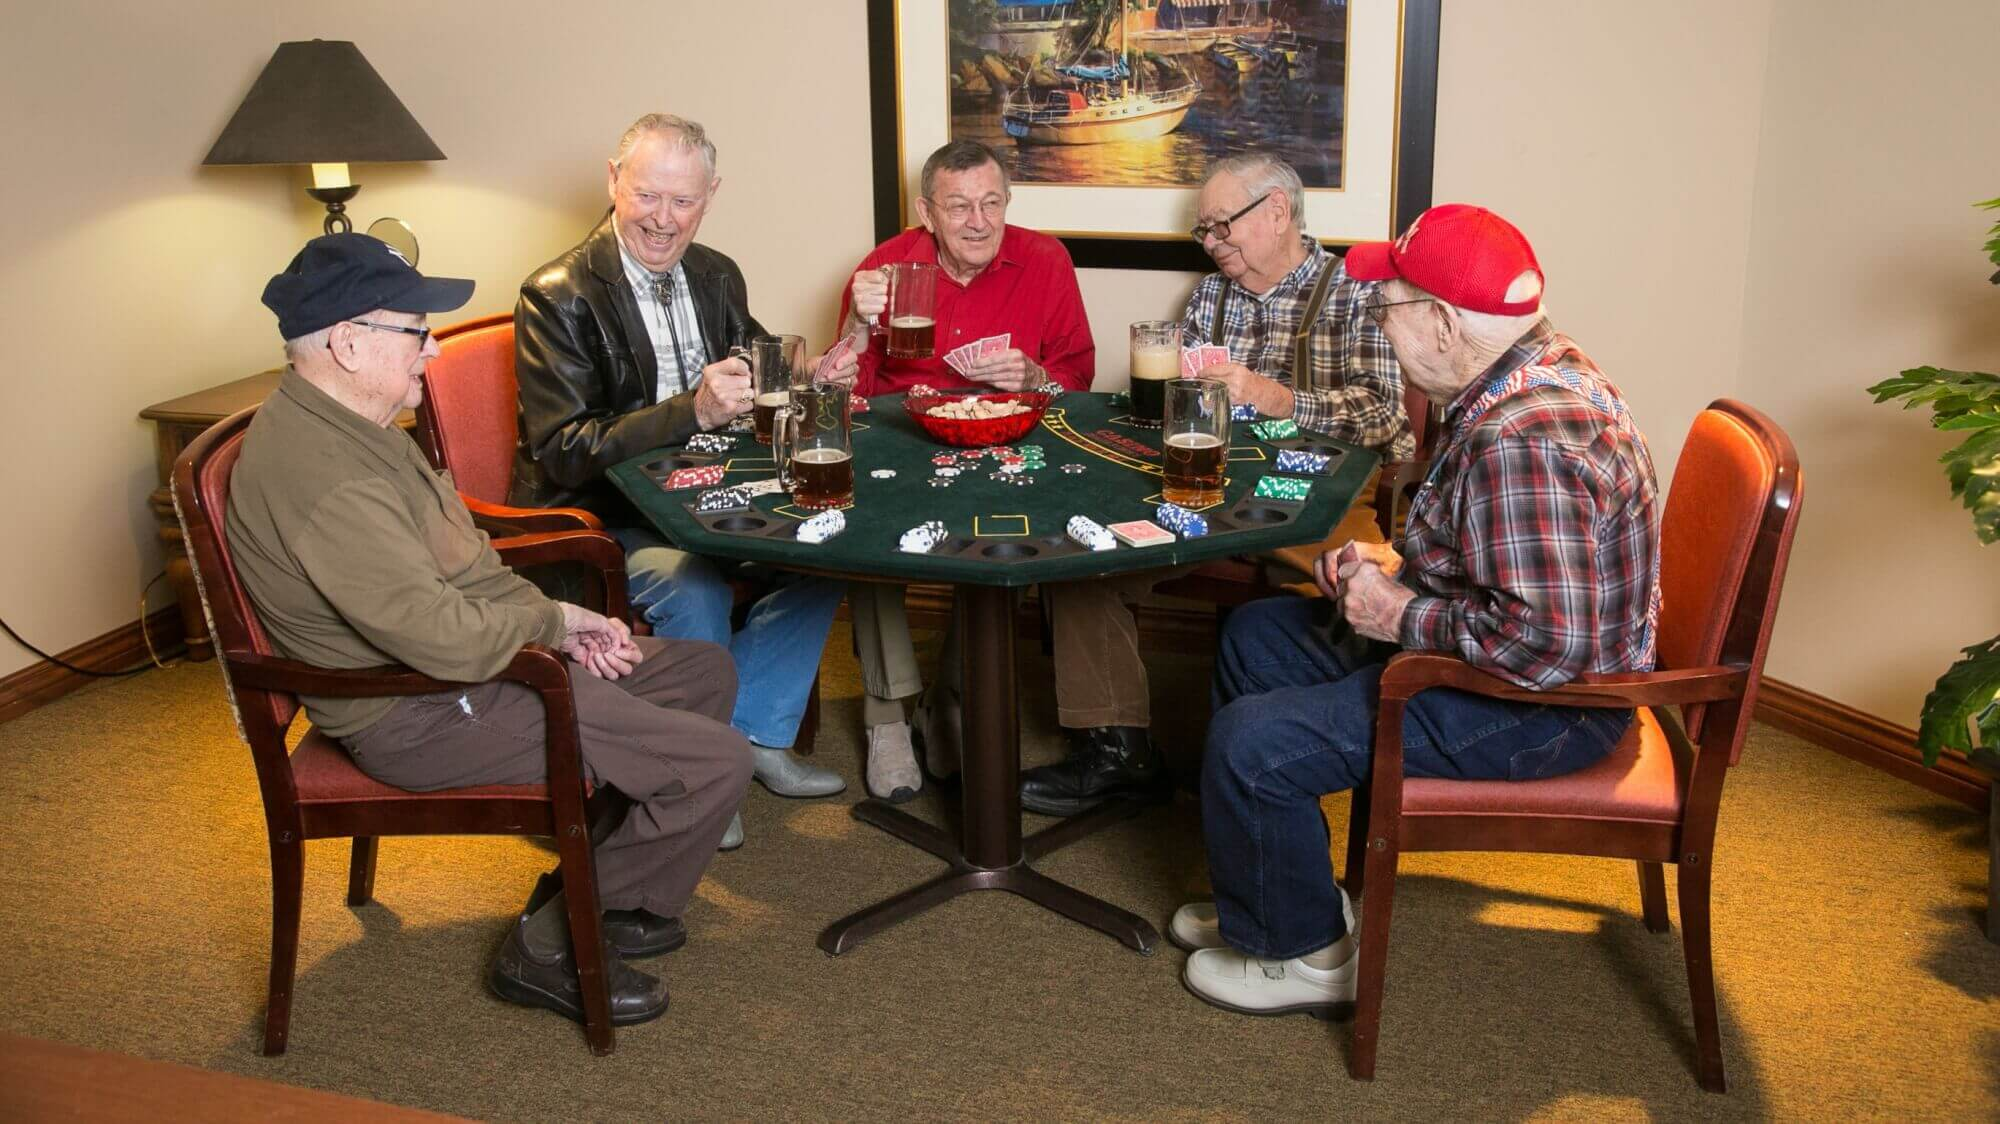 Senior friends playing poker and drinking beer.